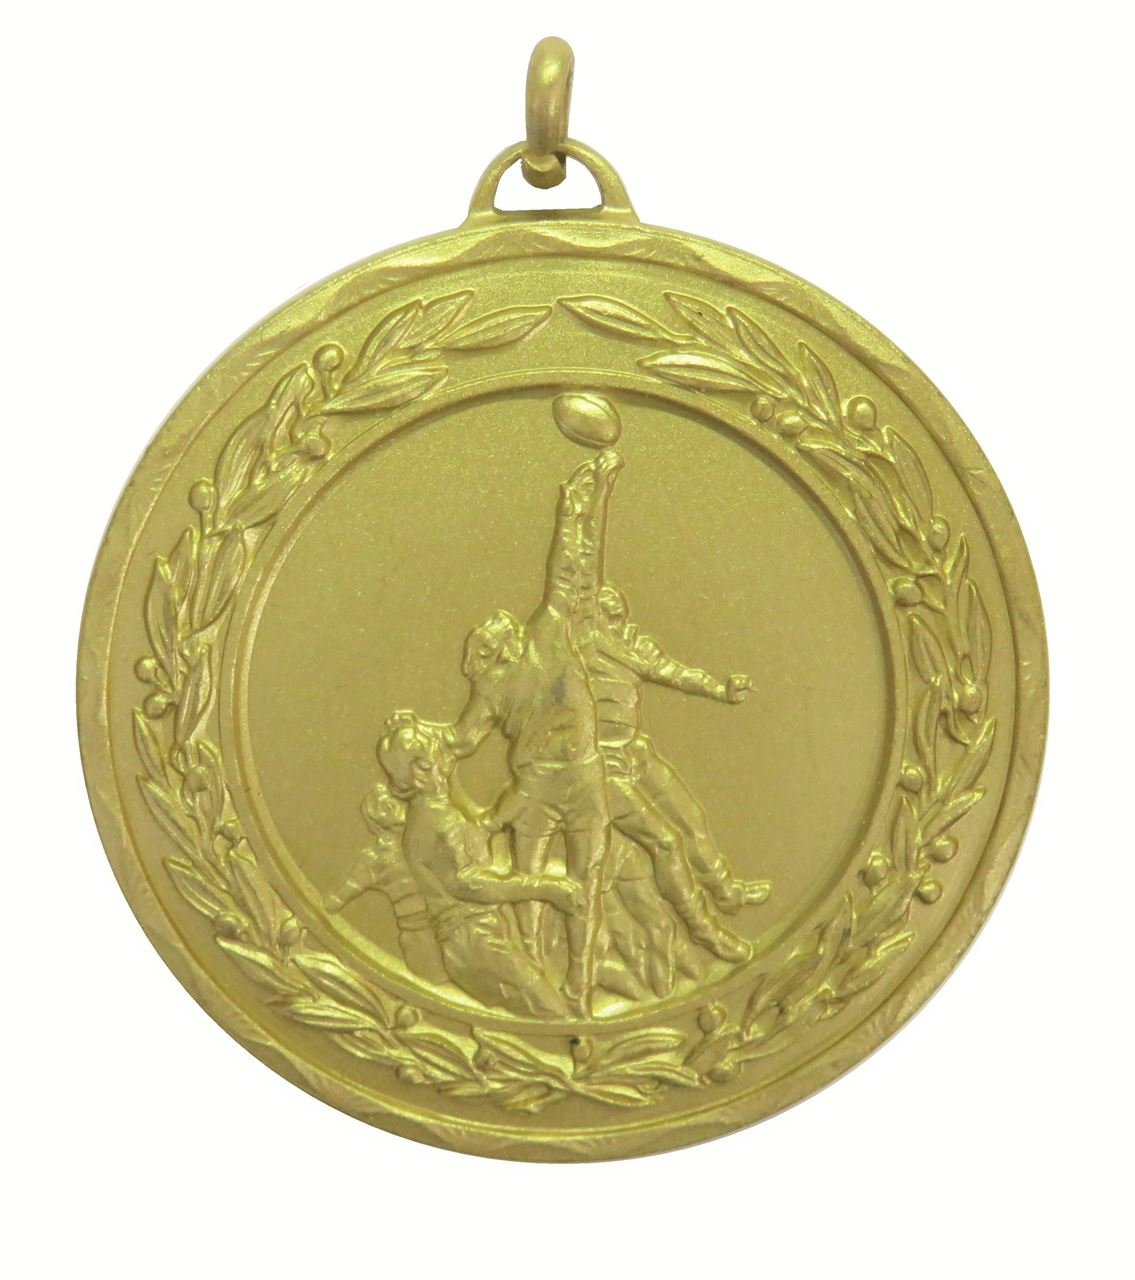 Gold Laurel Economy Rugby Lineout Medal (size: 50mm) - 4280E